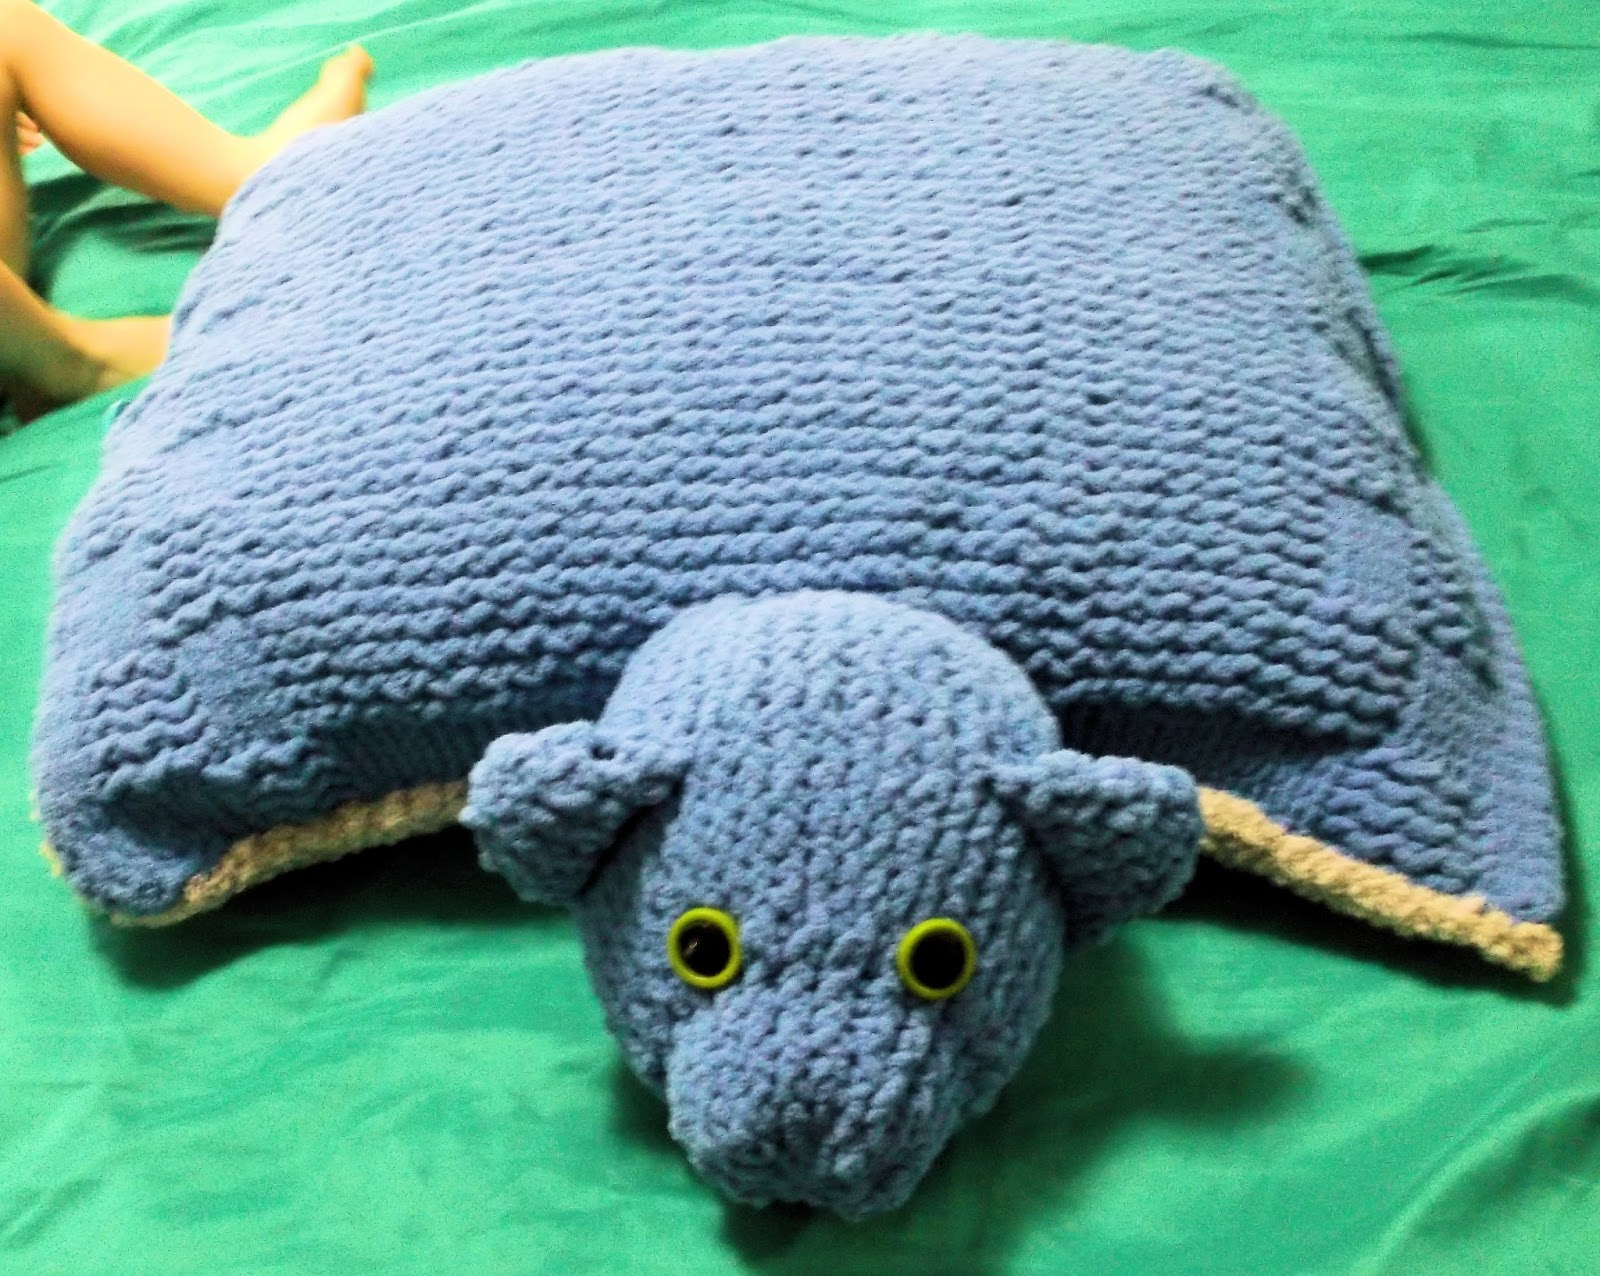 Animal Pillow Knitting Patterns : The Loom Muse : How to Loom Knit an Animal Pillow